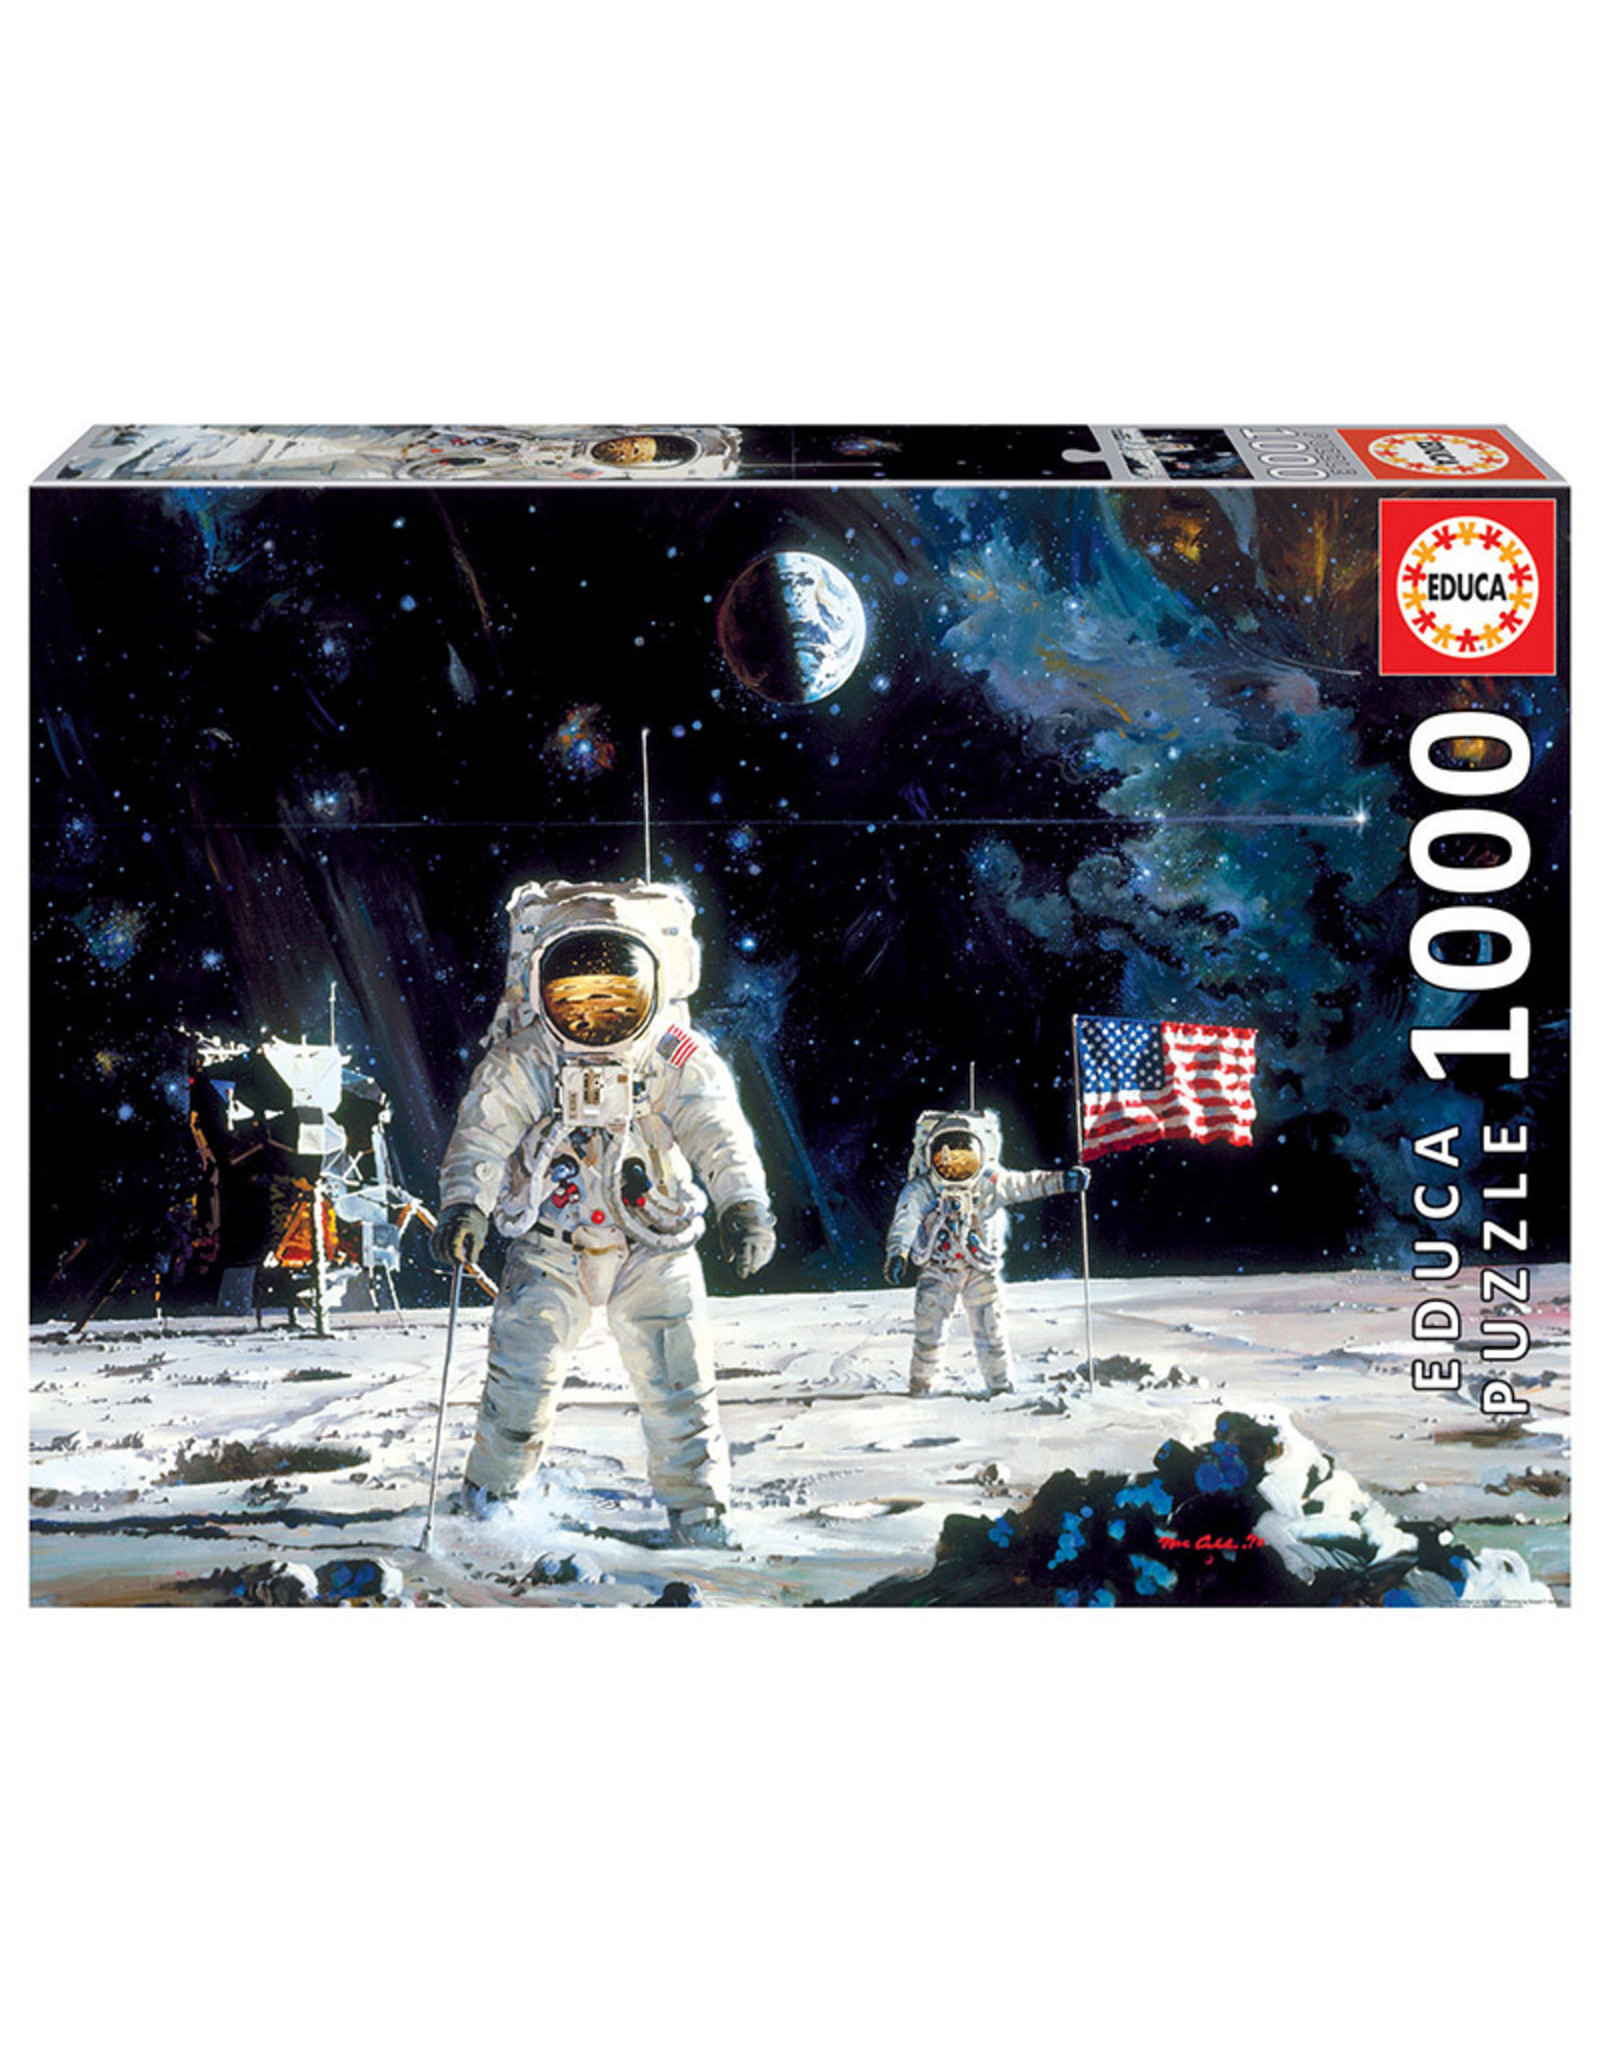 Educa First Men on the Moon - 1000 Piece Puzzle